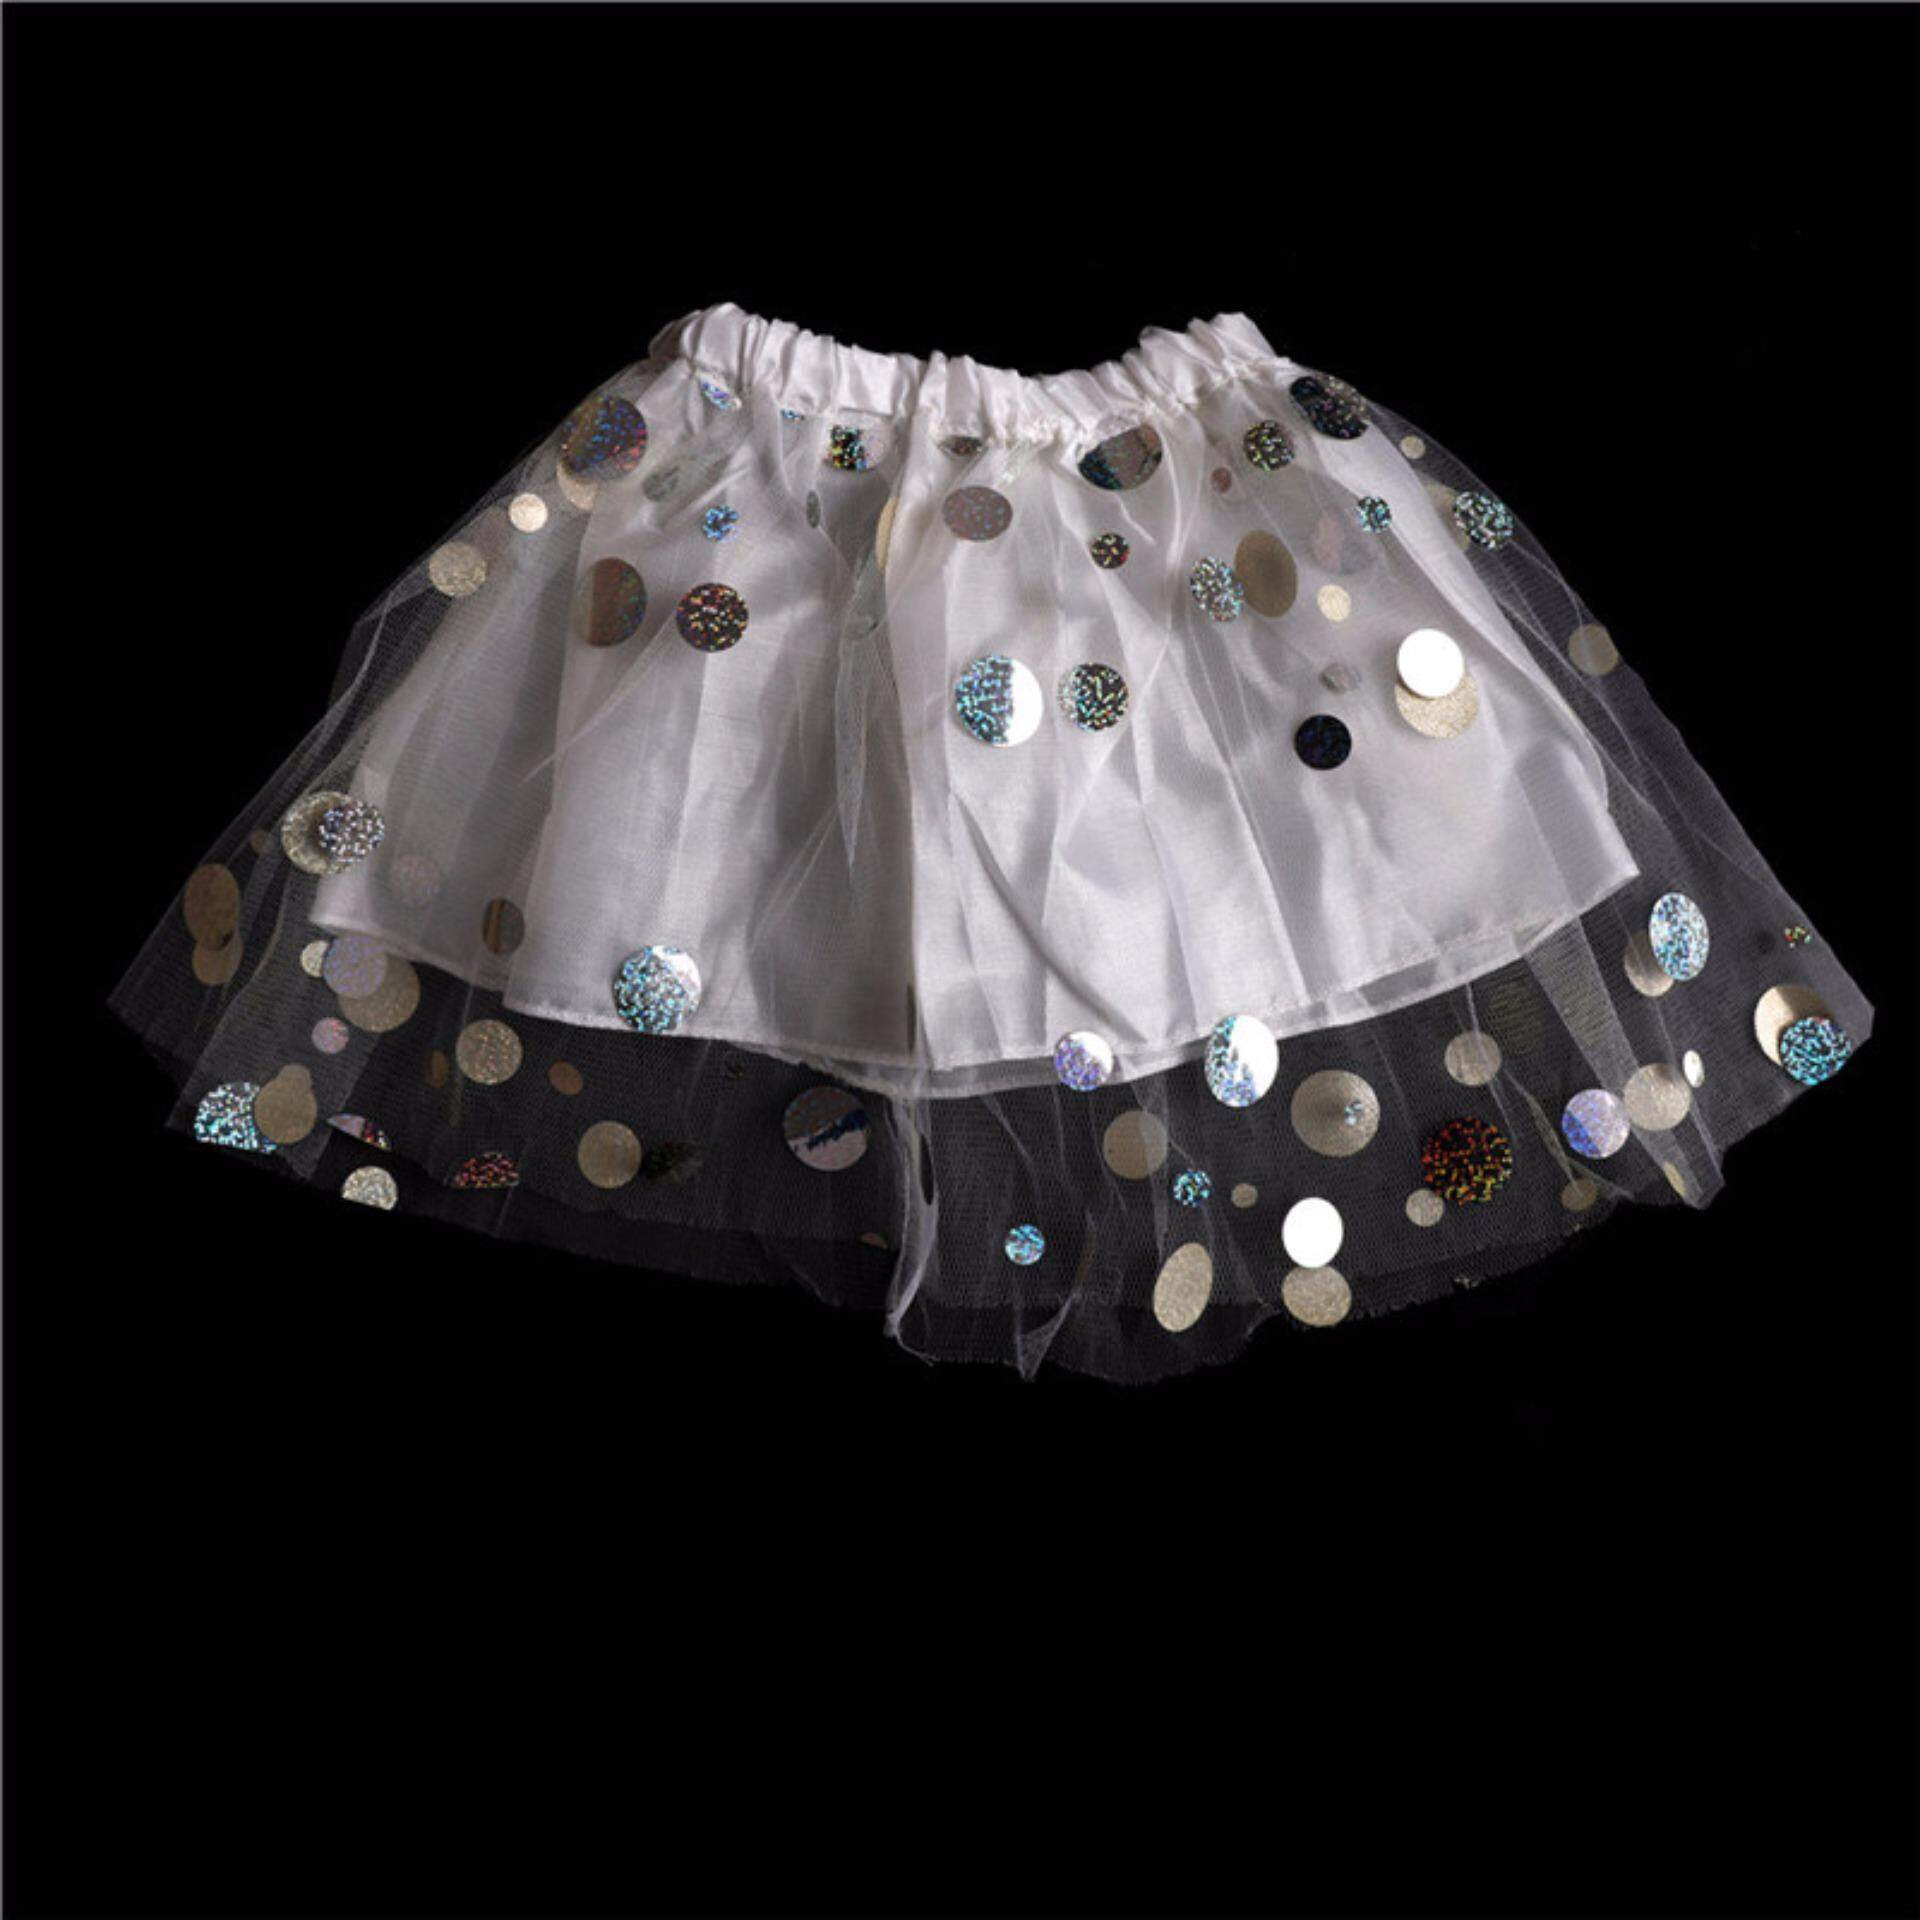 Baby Skirt Childrens Clothing Girls Princess Tutu Skirts Casual Skirt By Magical House.